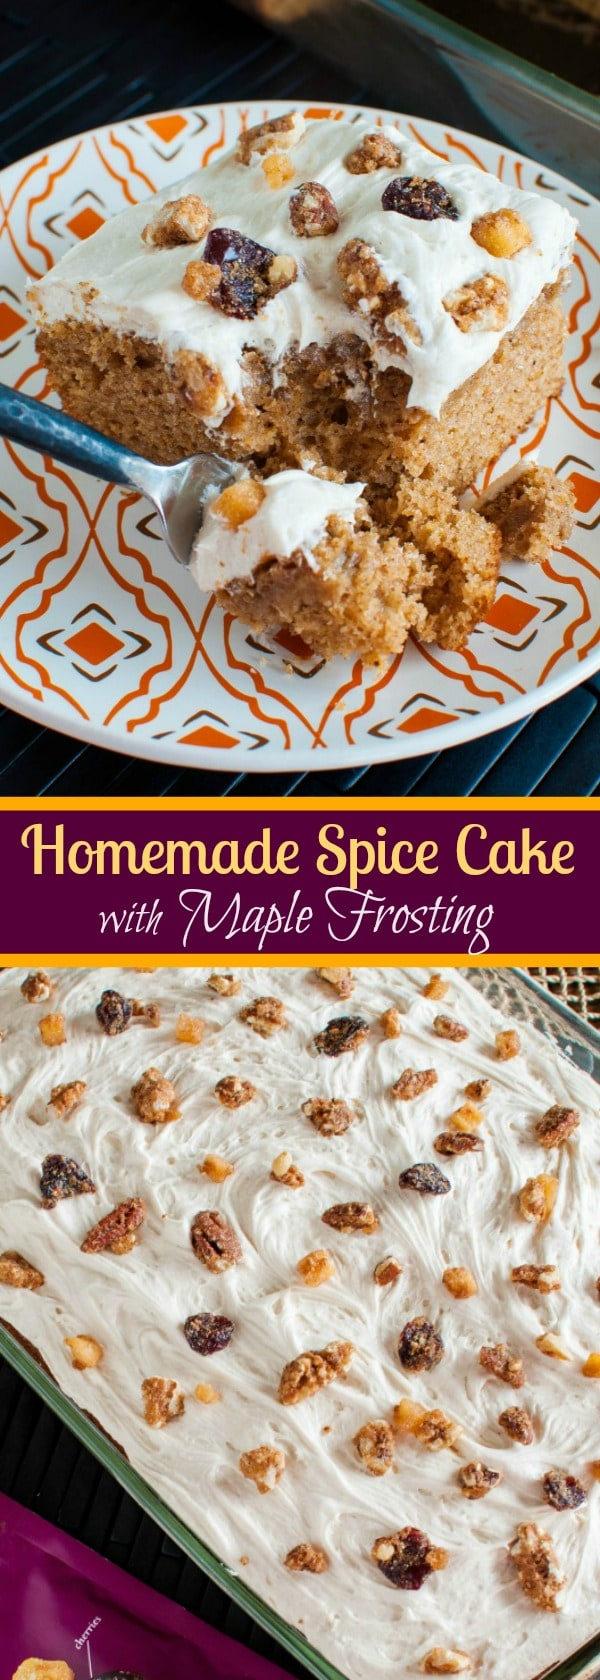 Homemade Spice Cake with Maple Frosting and Maple Glazed Pecans - the perfect Thanksgiving or Christmas dessert recipe! As easy as a box mix but tastes SO much better!